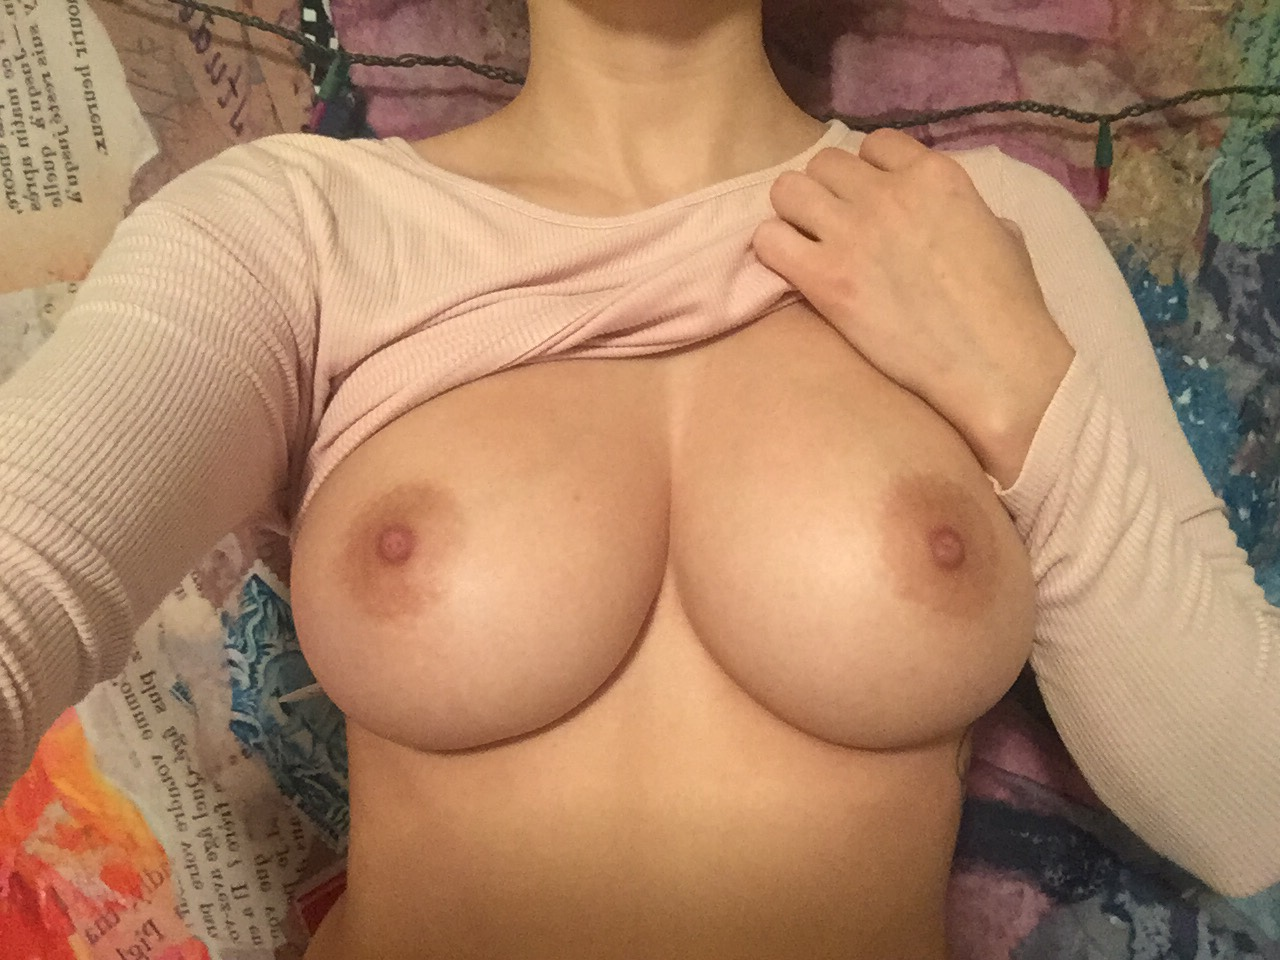 Anal sex pics with big boobs naked